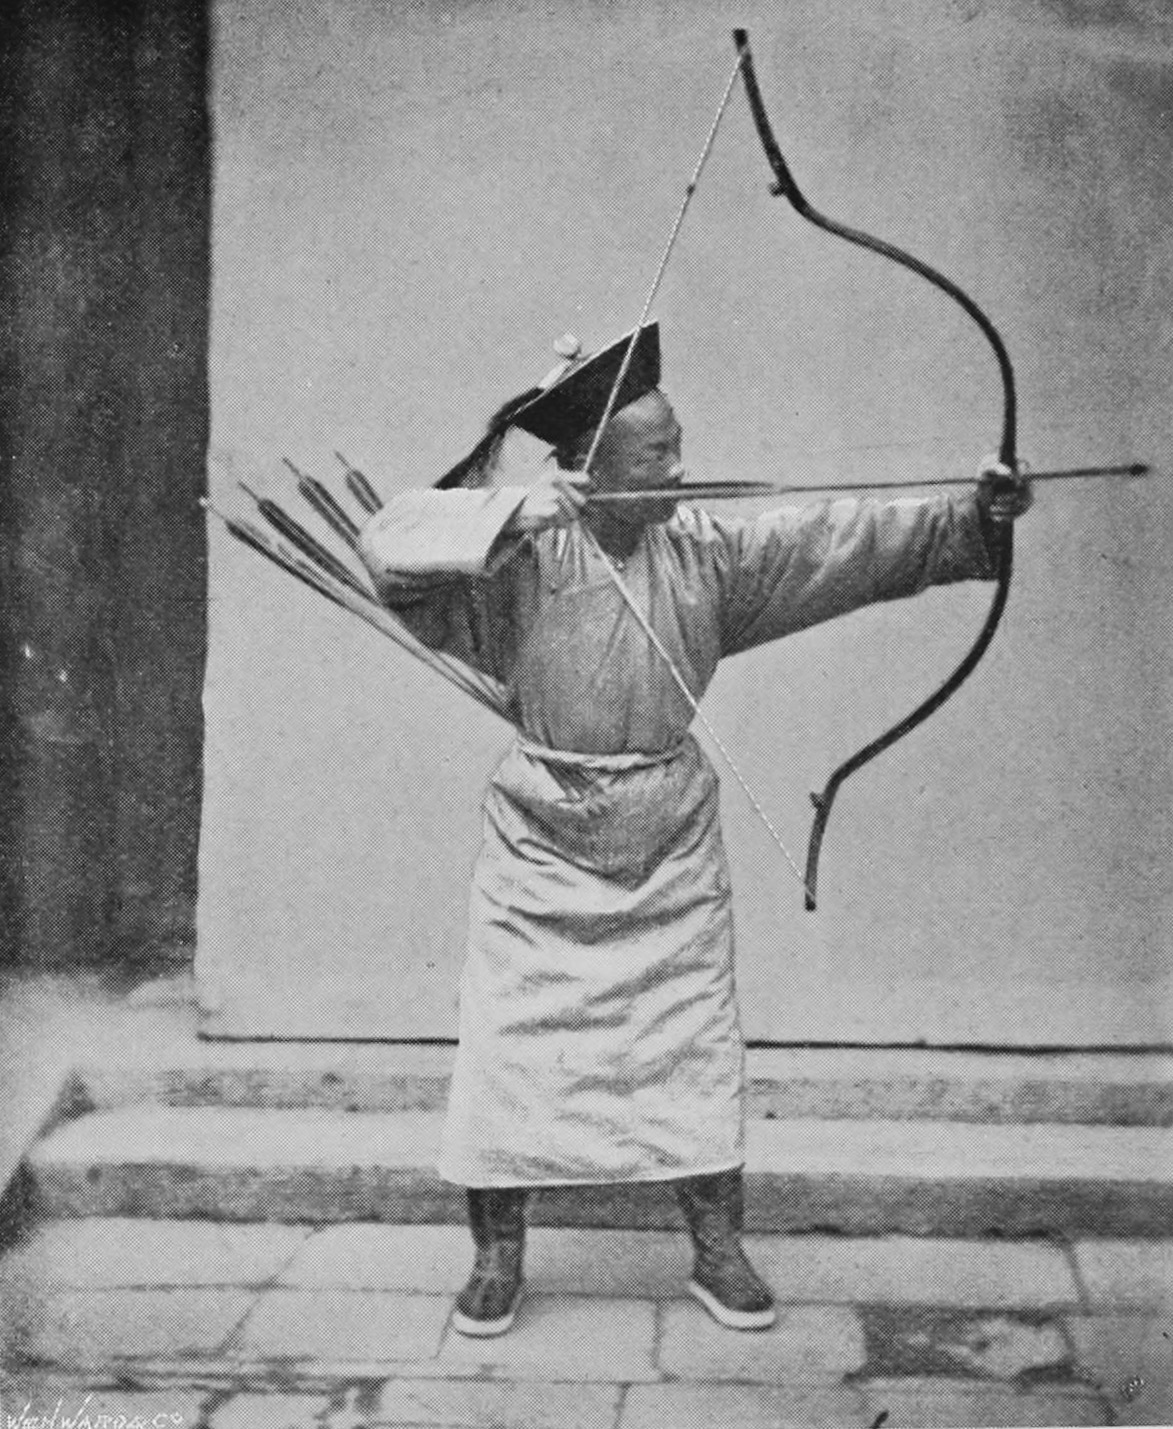 Manchu archers, photographed in the end of 19th century